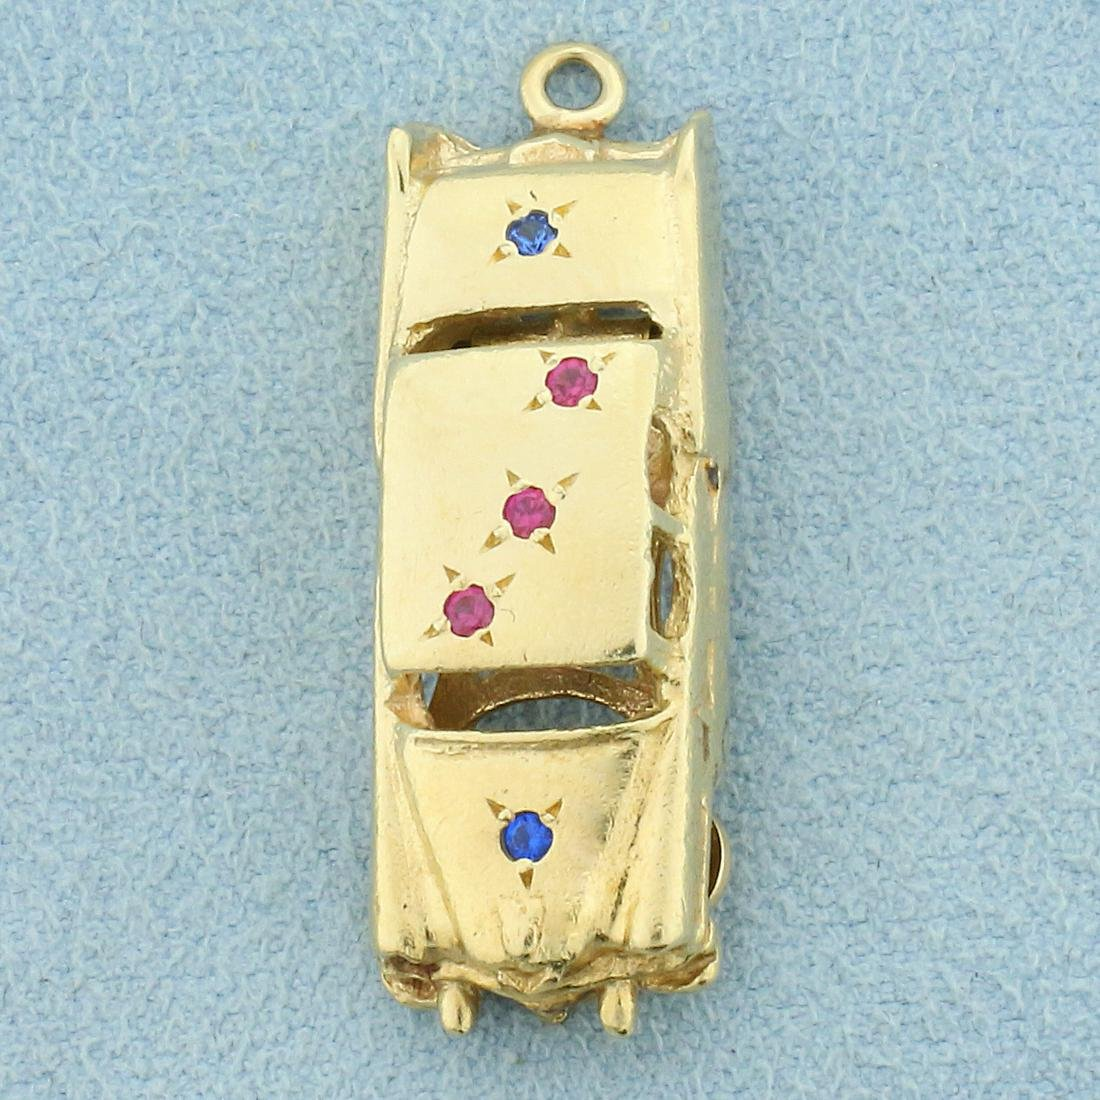 Vintage Car Sapphire Car Charm or Pendant in 14K Yellow